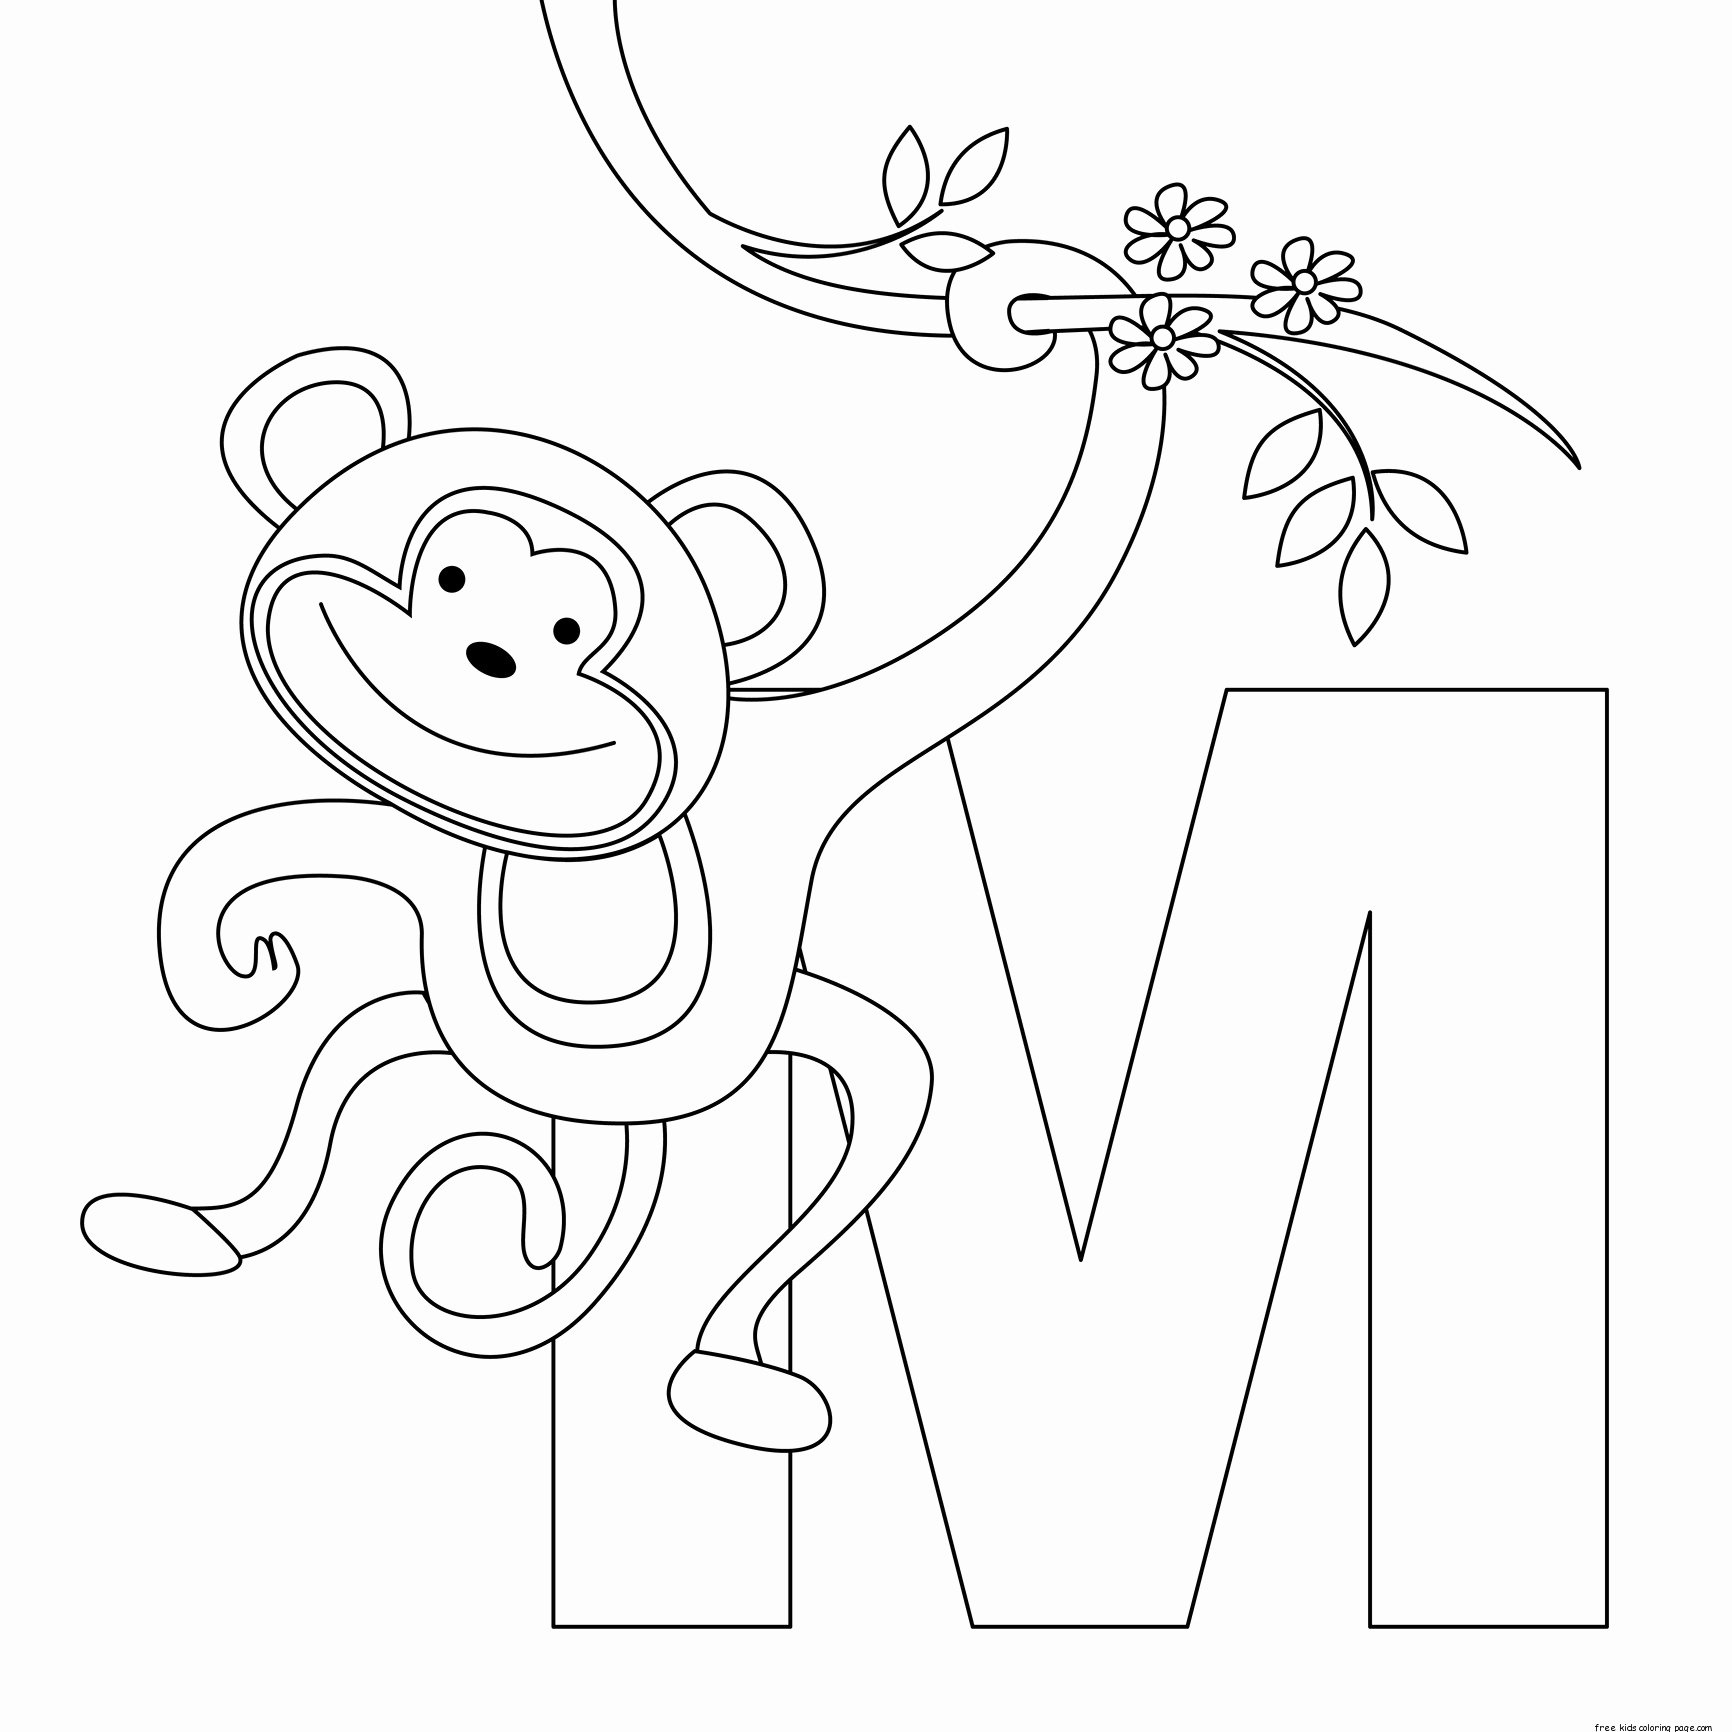 Printable Pictures Of Animals Unique Printable Animal Alphabet Letters M Coloring Pagesfree